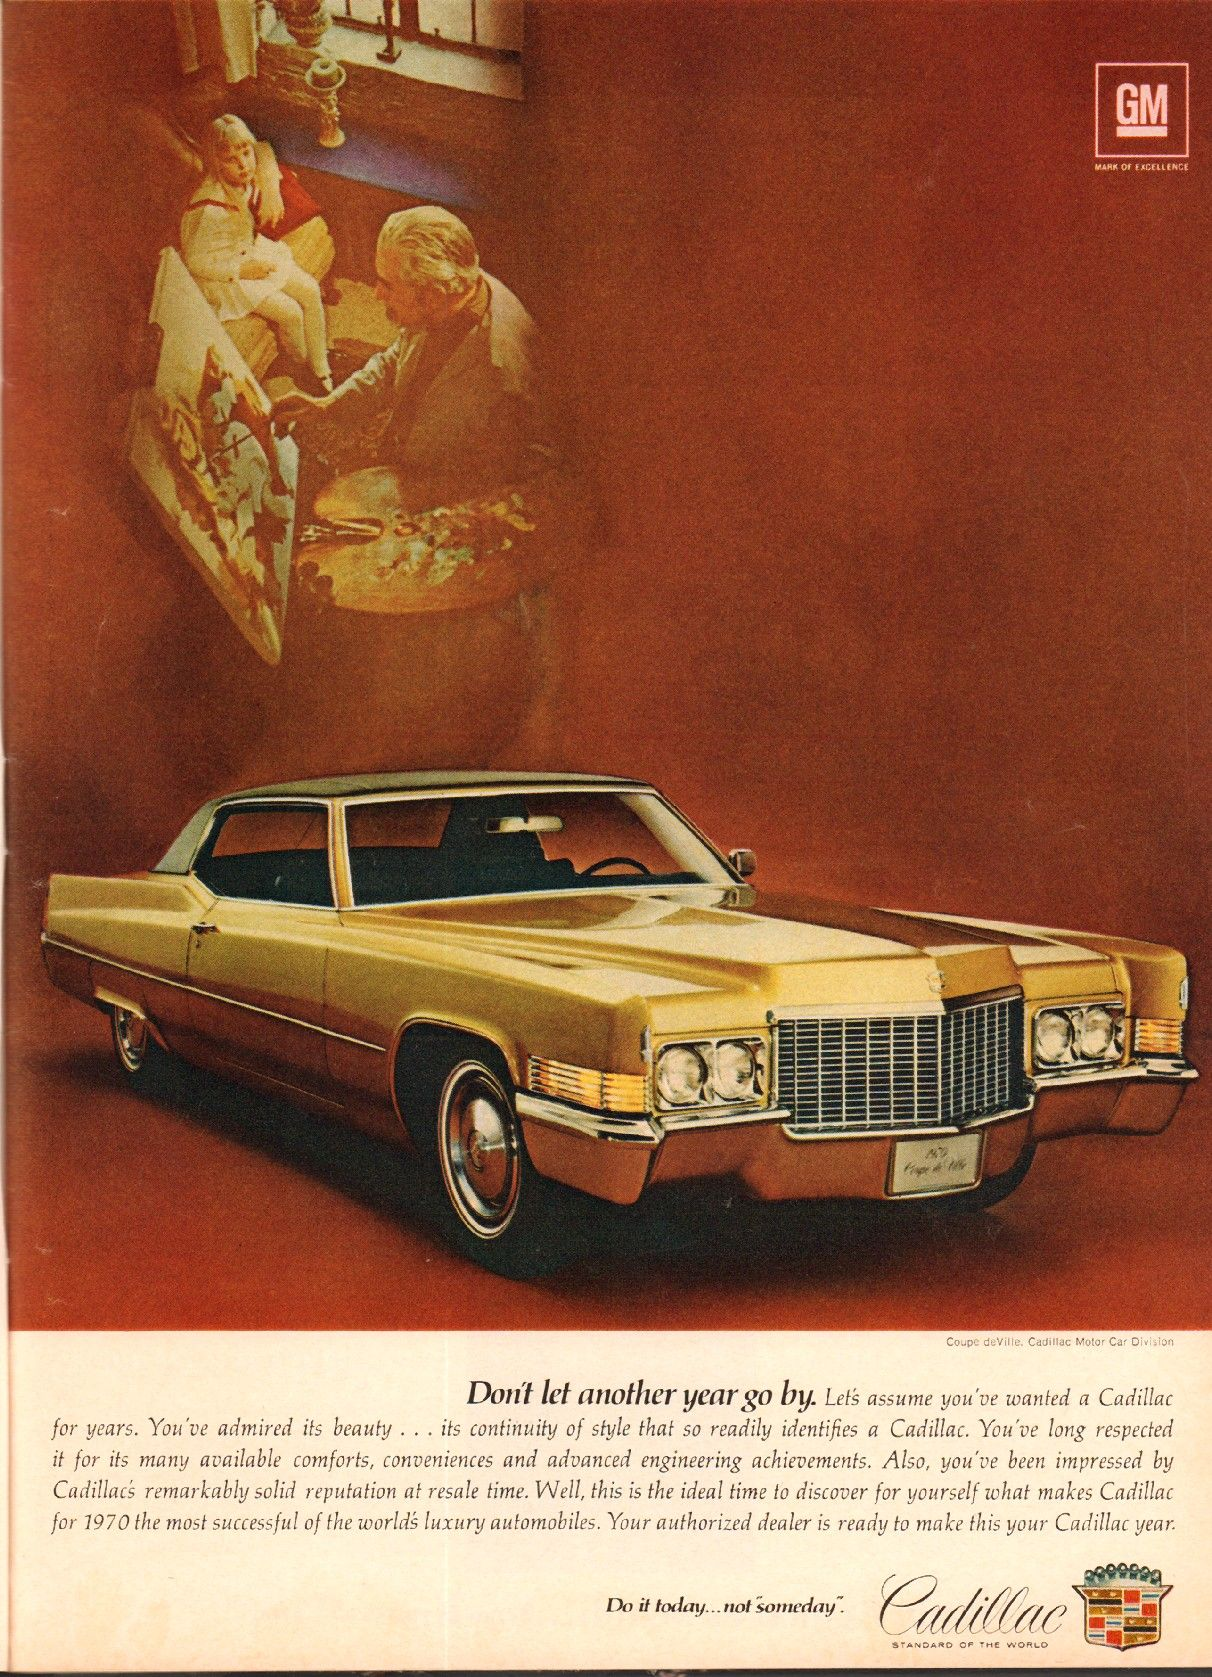 All sizes | 1970 Cadillac Coupe deVille Advertisement Newsweek May 11 1970 | Flickr - Photo Sharing!